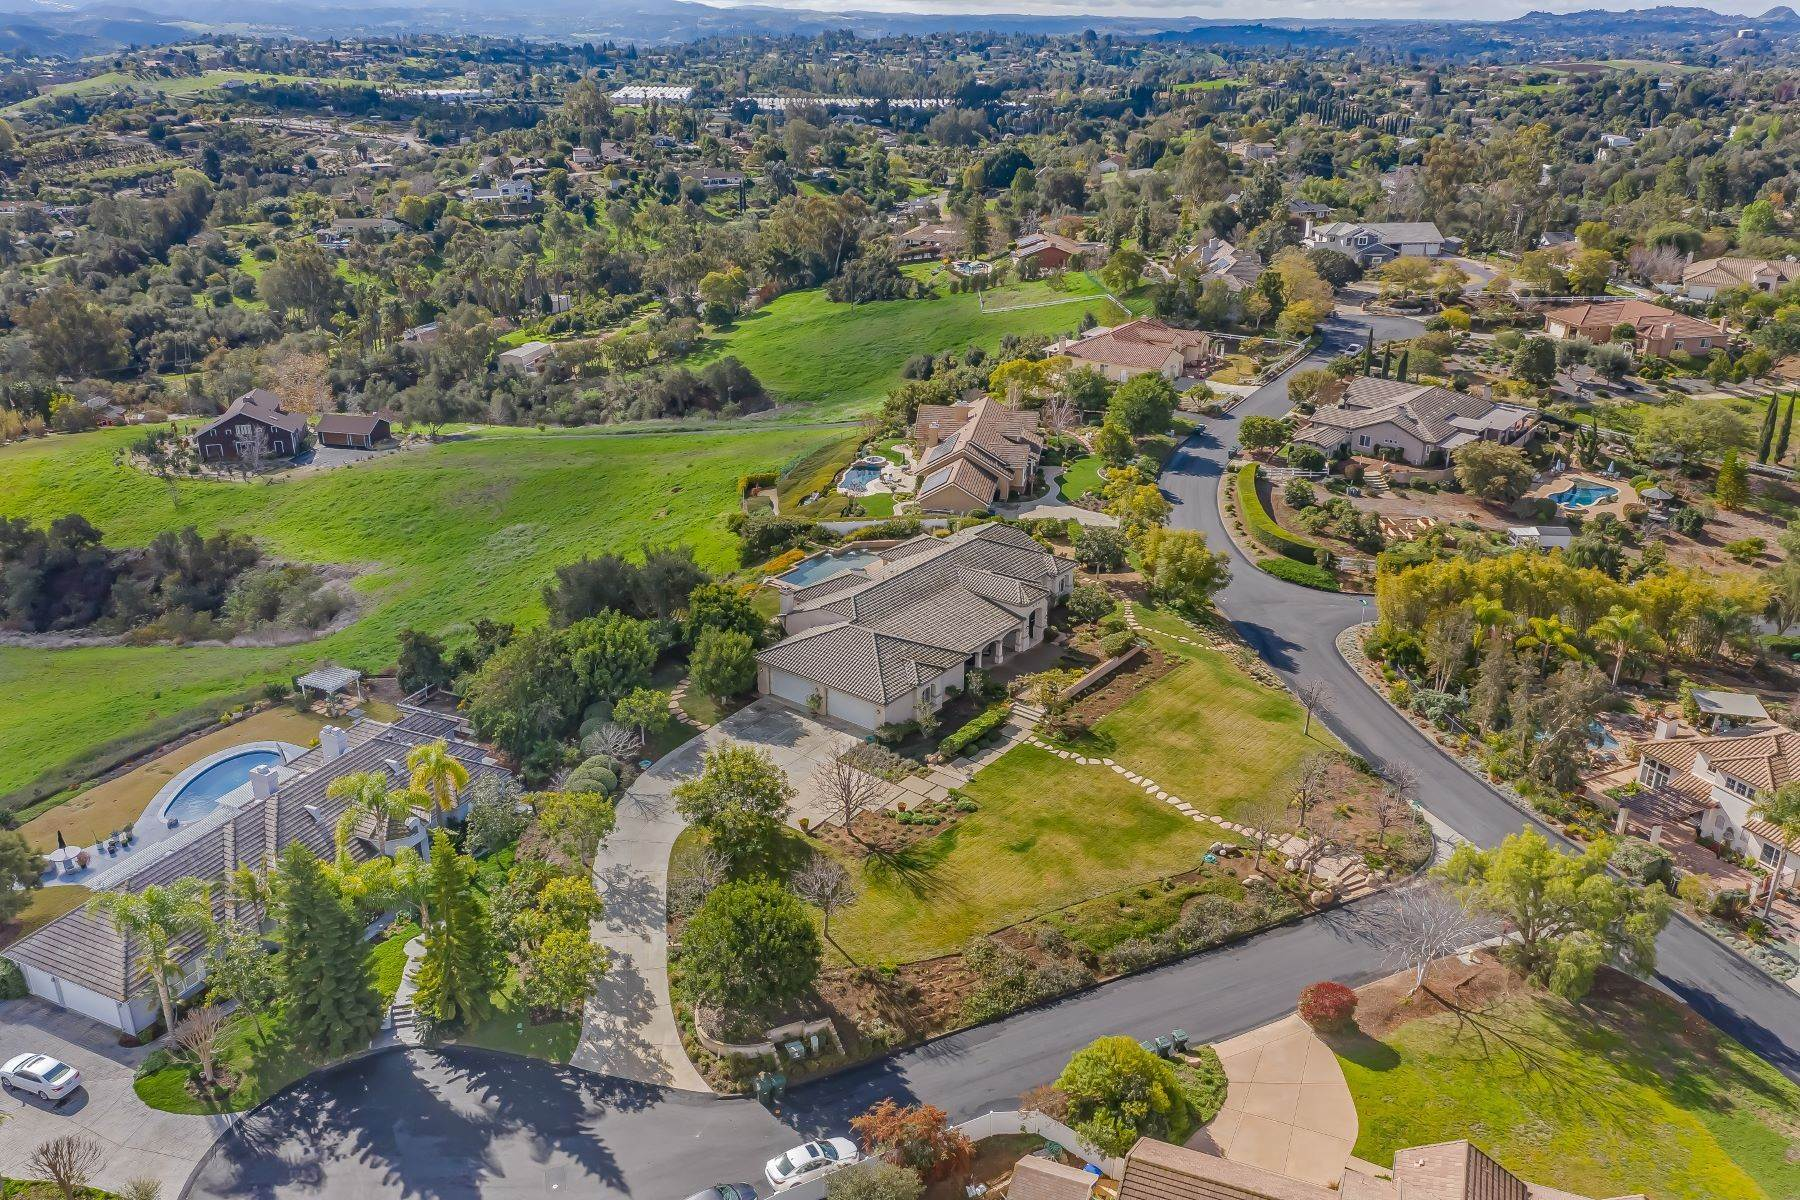 Single Family Homes for Sale at 2223 Lindsey Court, Fallbrook, CA 92028 2223 Lindsey Court Fallbrook, California 92028 United States